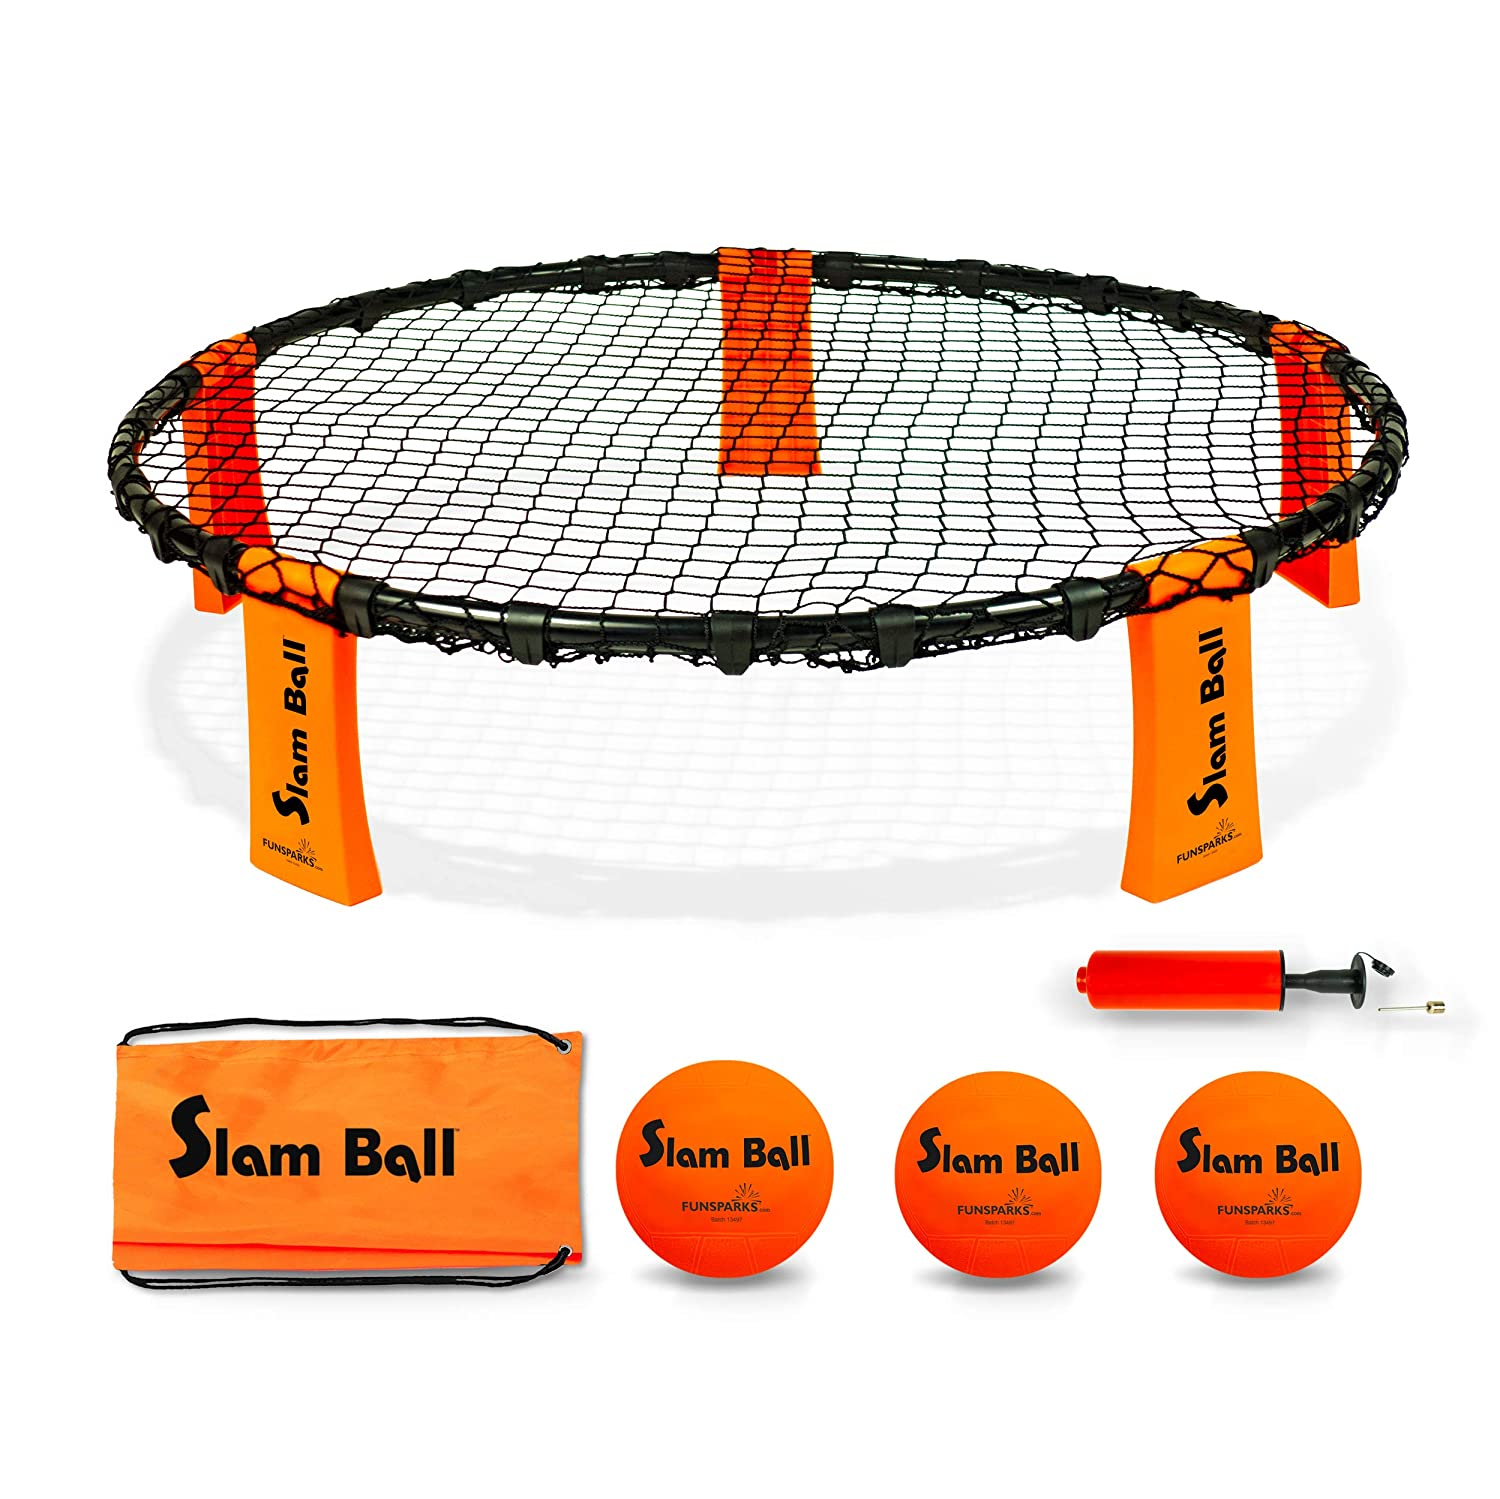 The Funsparks Slam Ball travel product recommended by Ciara Hautau on Lifney.